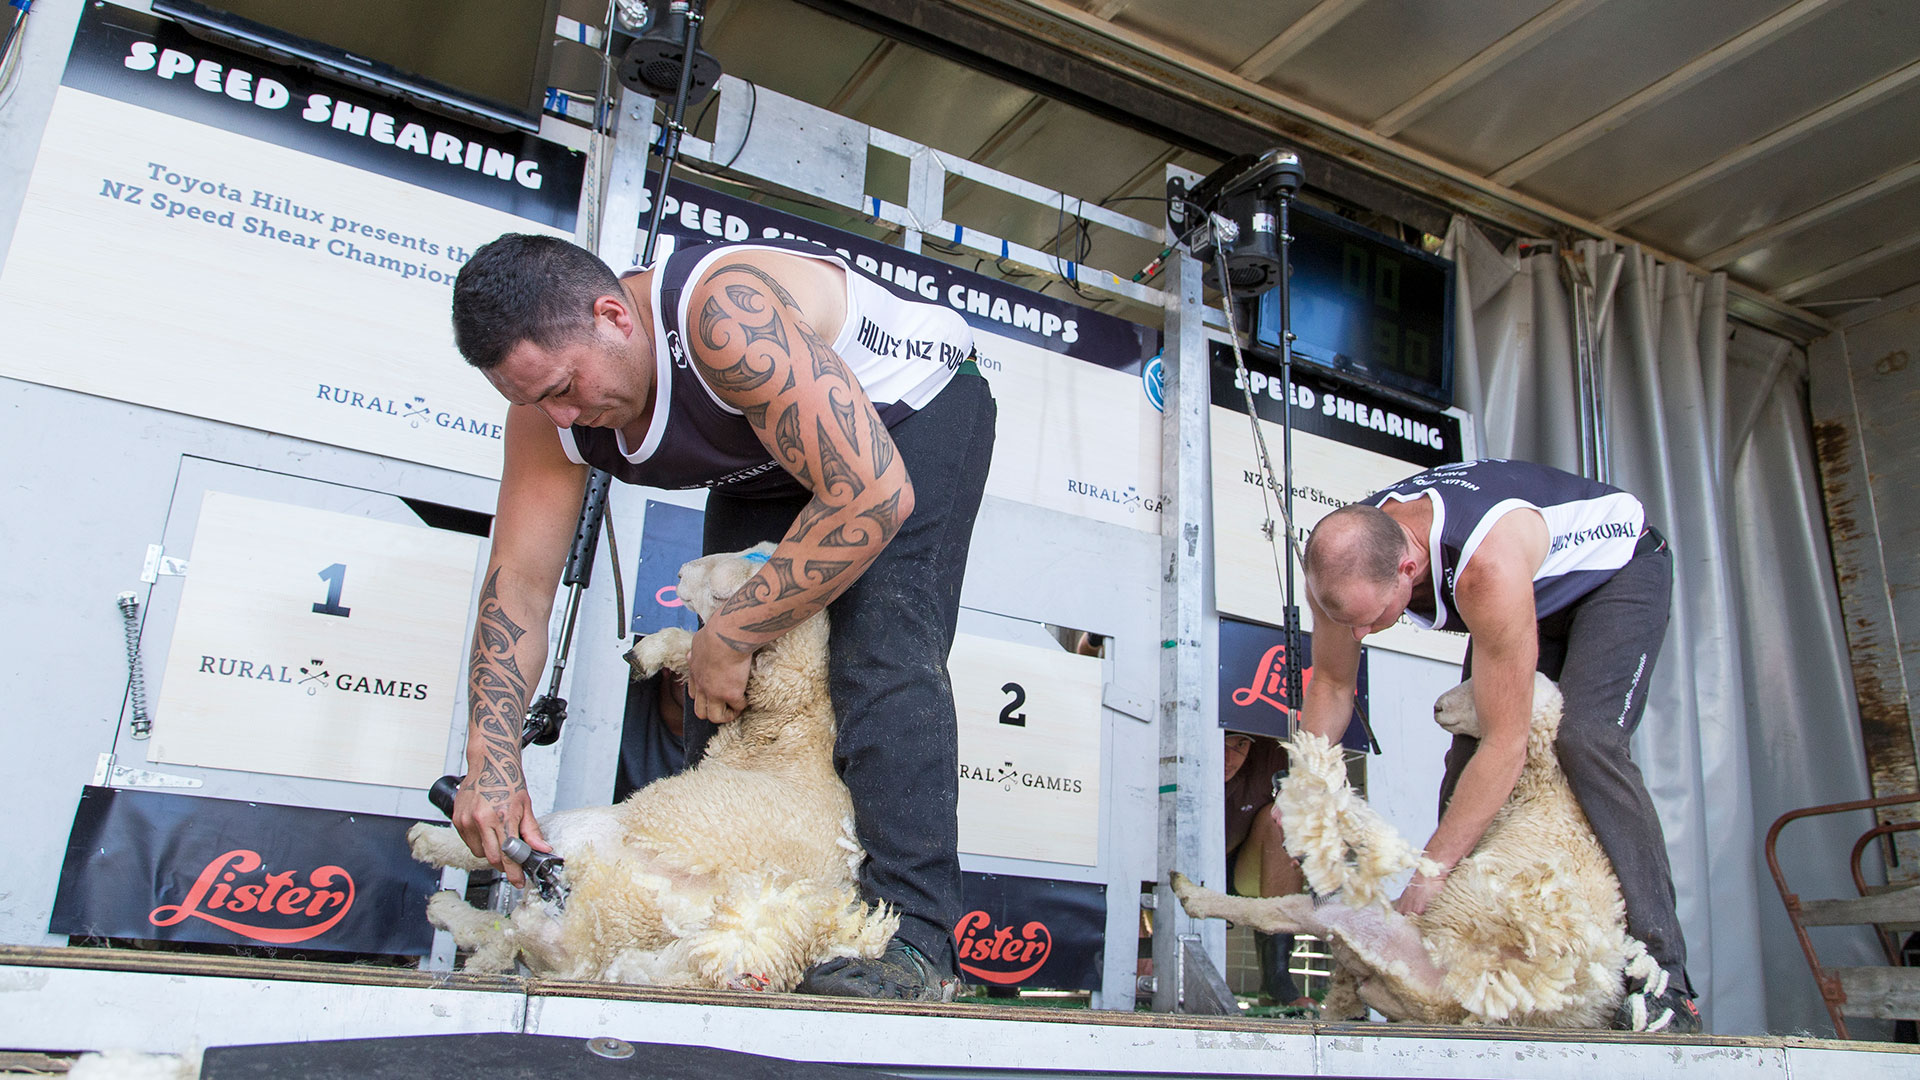 New Zealand Speed Shearing Championship Te Tatawhainga